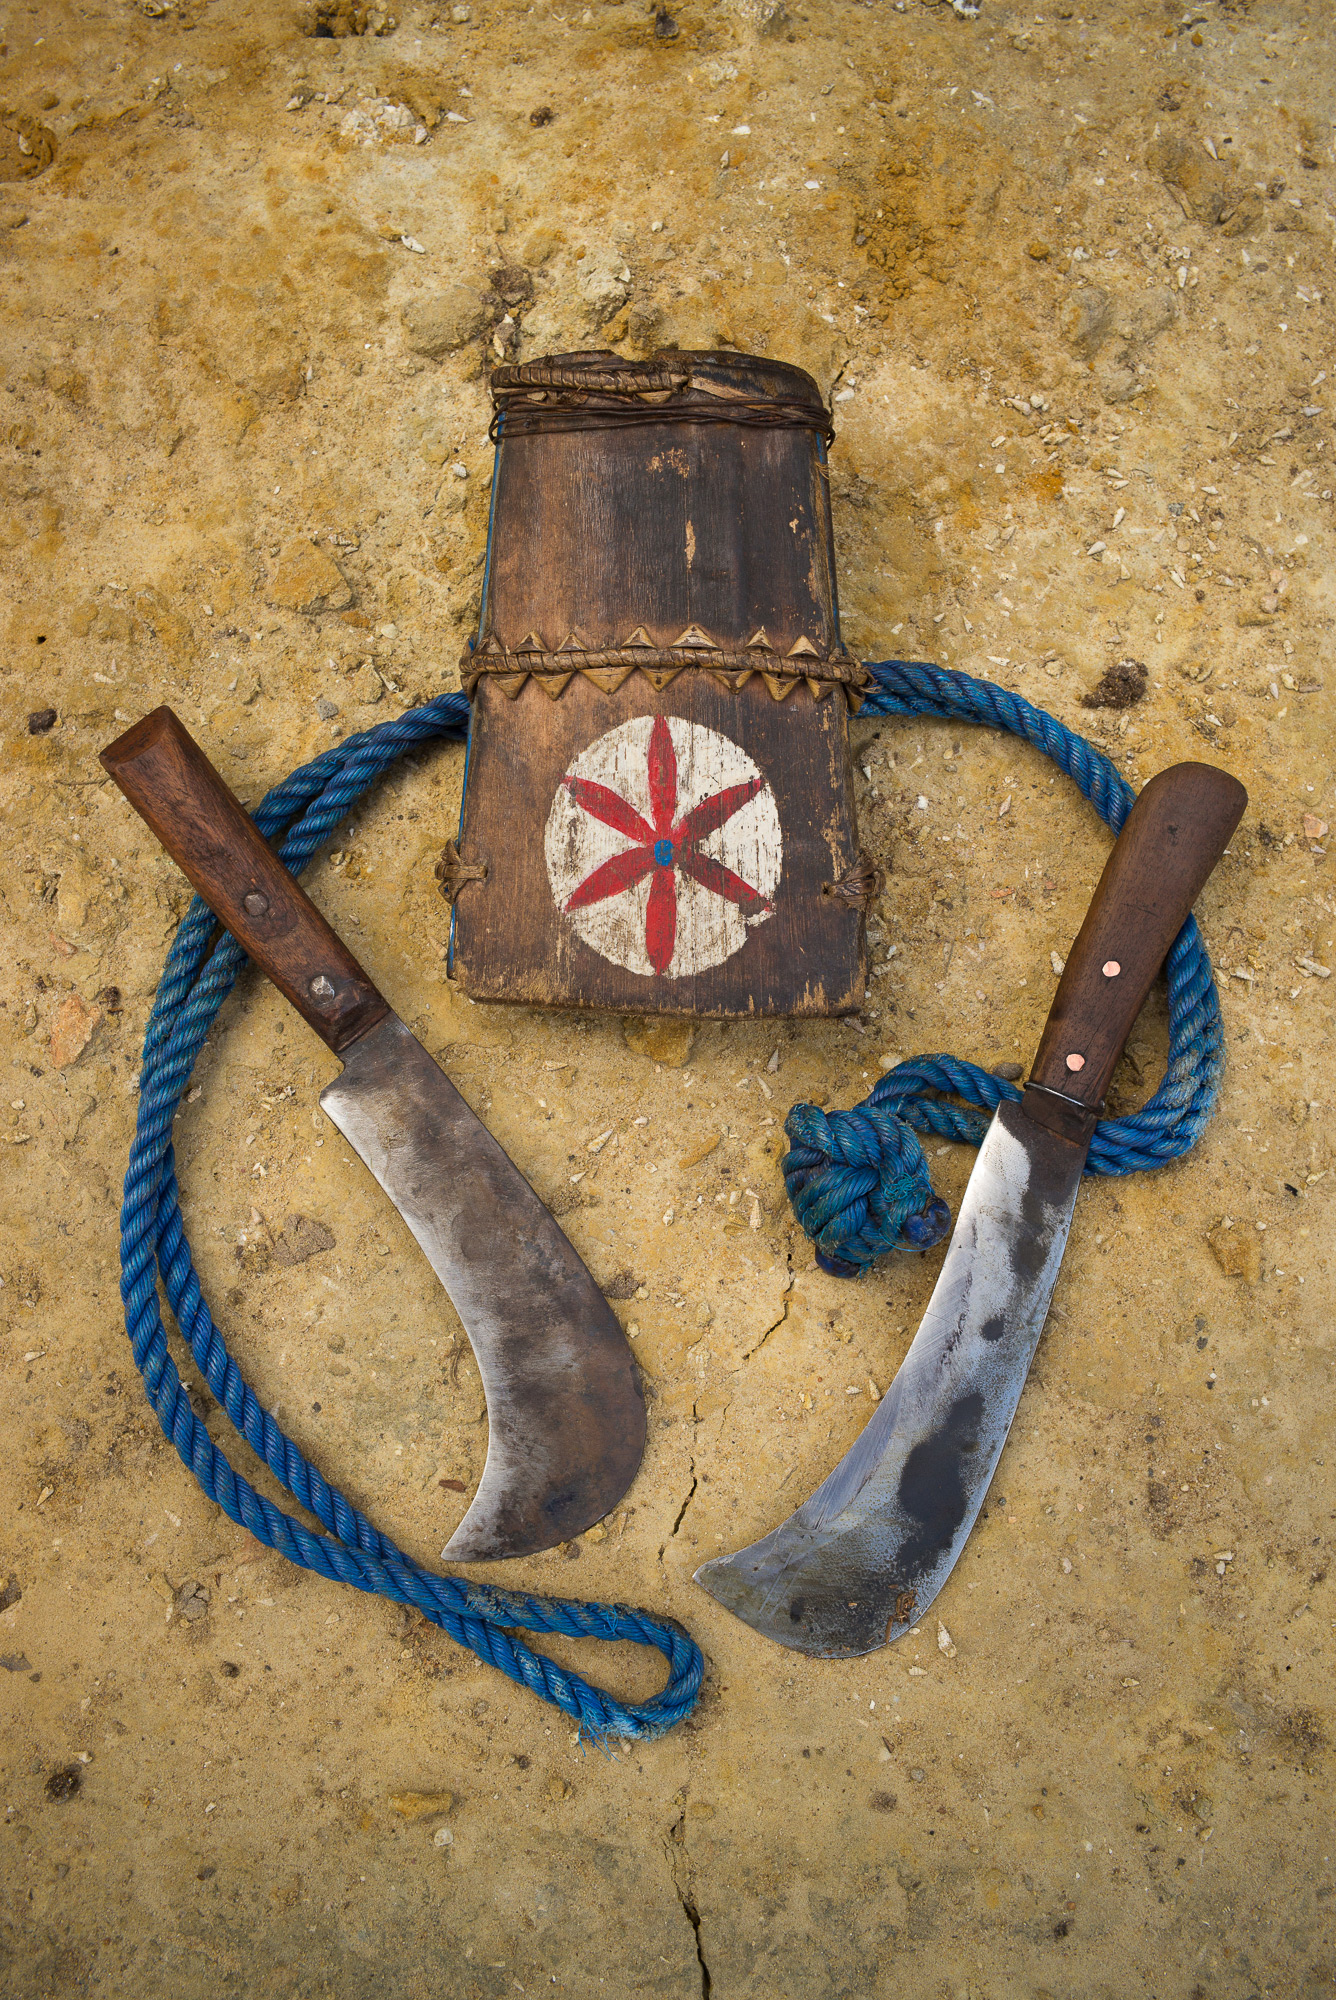 Tools of the trade: the knives used to trim the  sapathe  and the leaves, and the rope with which they secure themselves to the tree while they work.